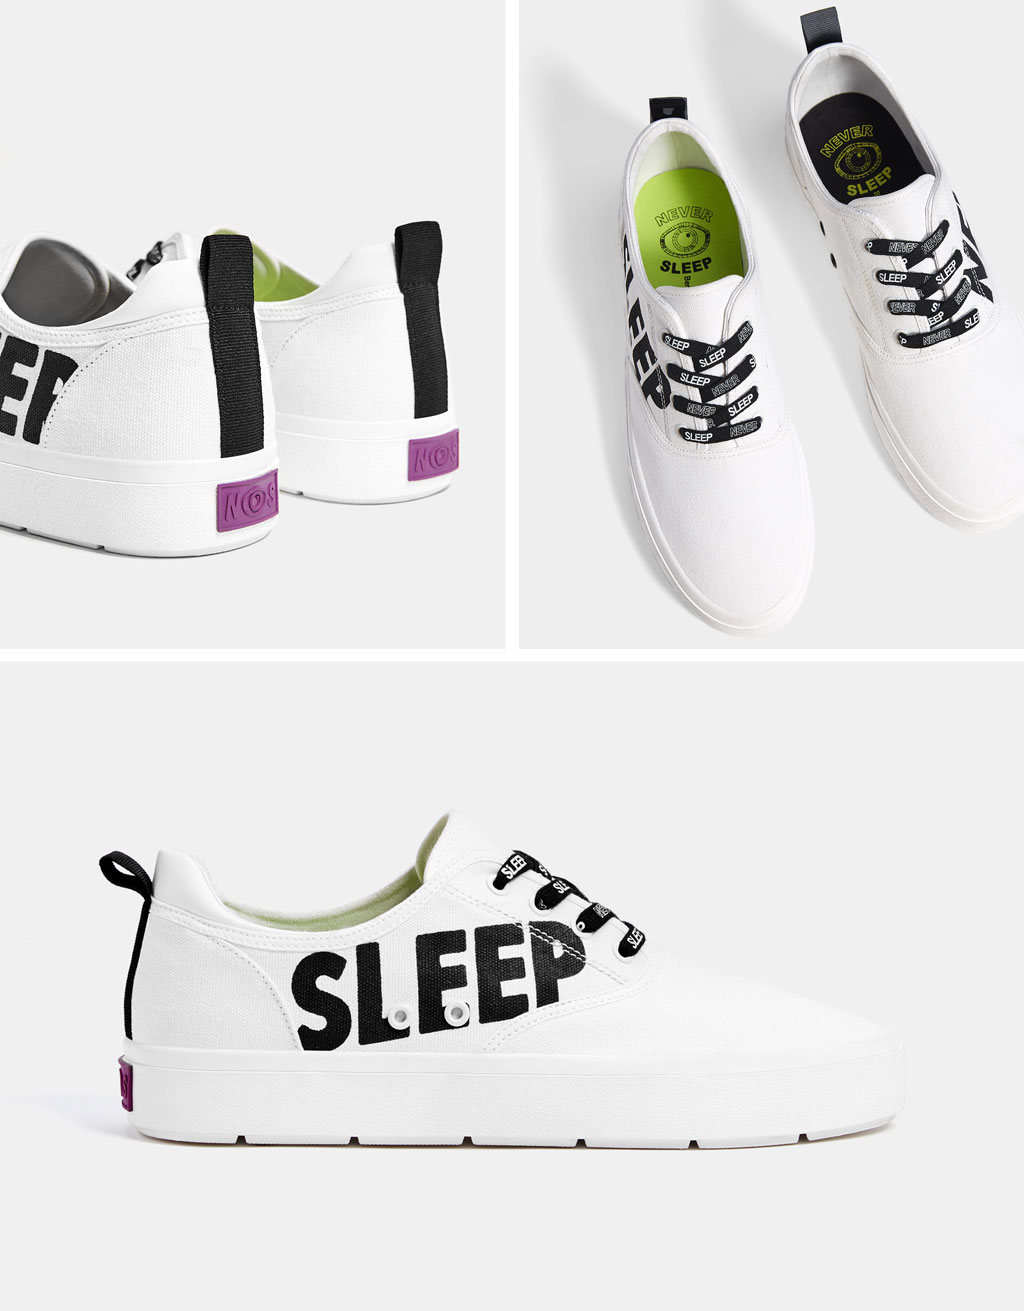 Men's slogan sneakers